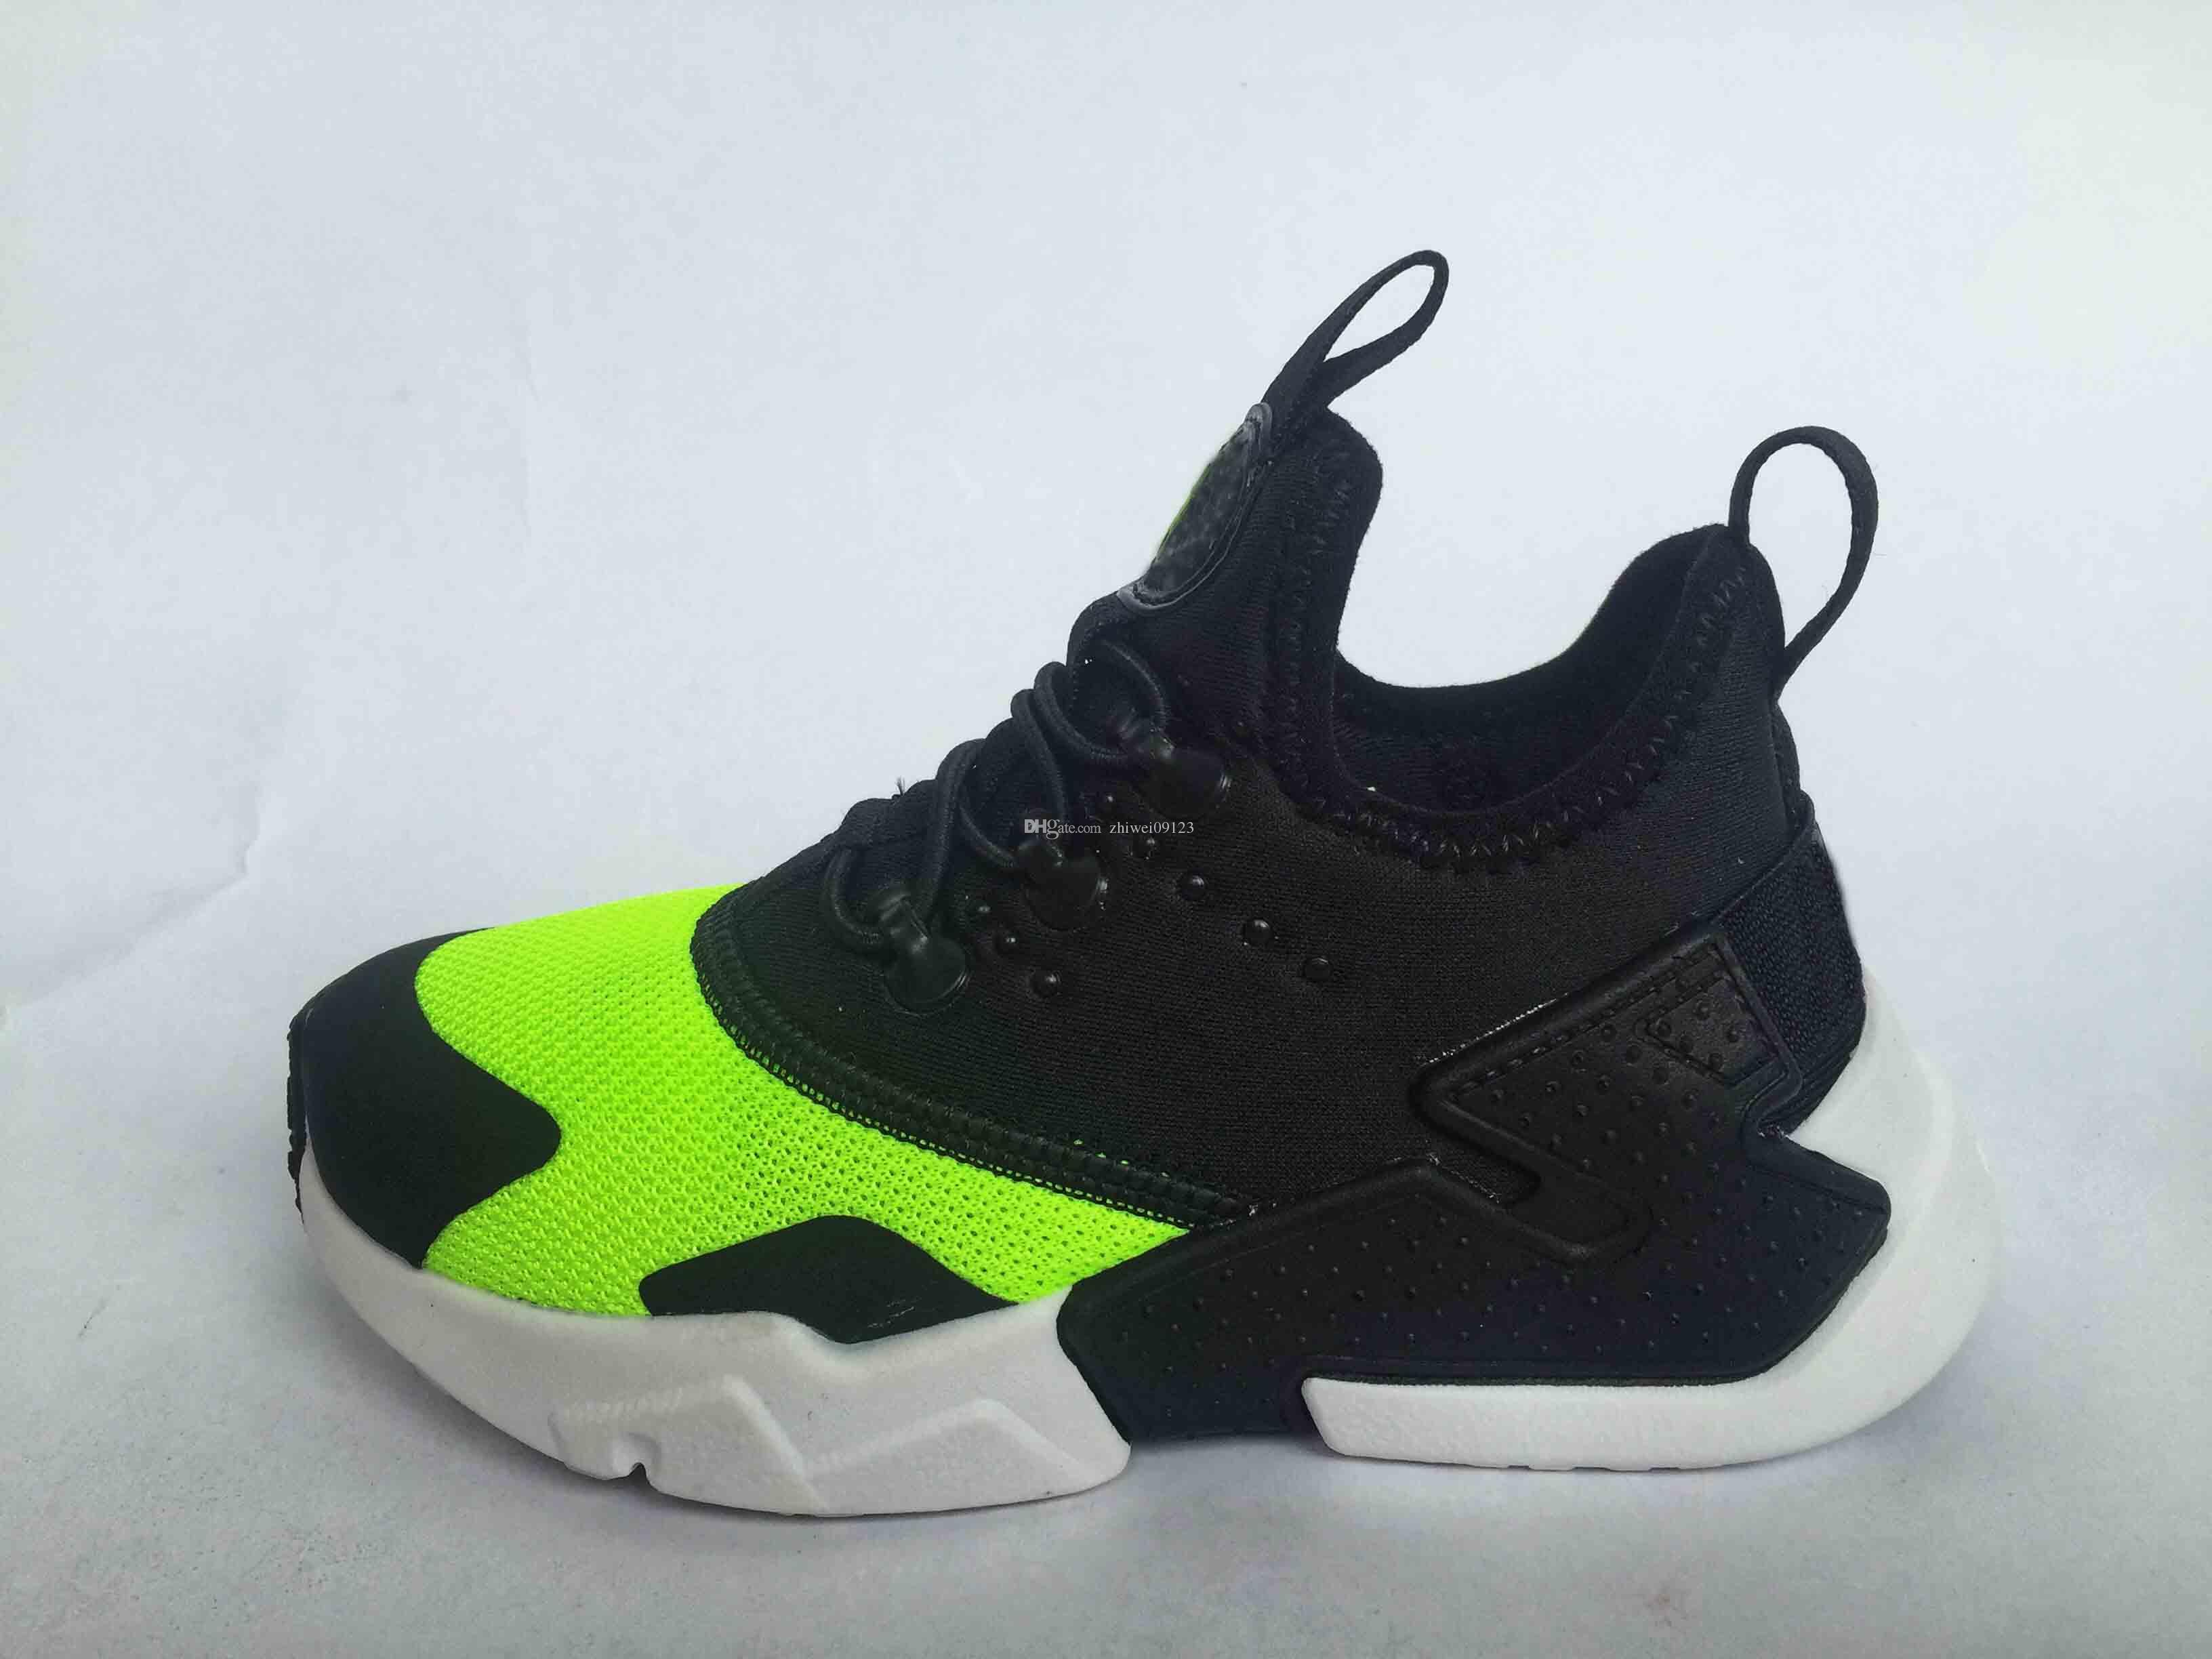 b771c70afe72 Lovely Air Huarache Ultra Running Shoes Big Kids Boys And Girls Black White Air  Huaraches Huraches Sports Sneakers Athletic Trainers Shoes Childrens  Walking ...